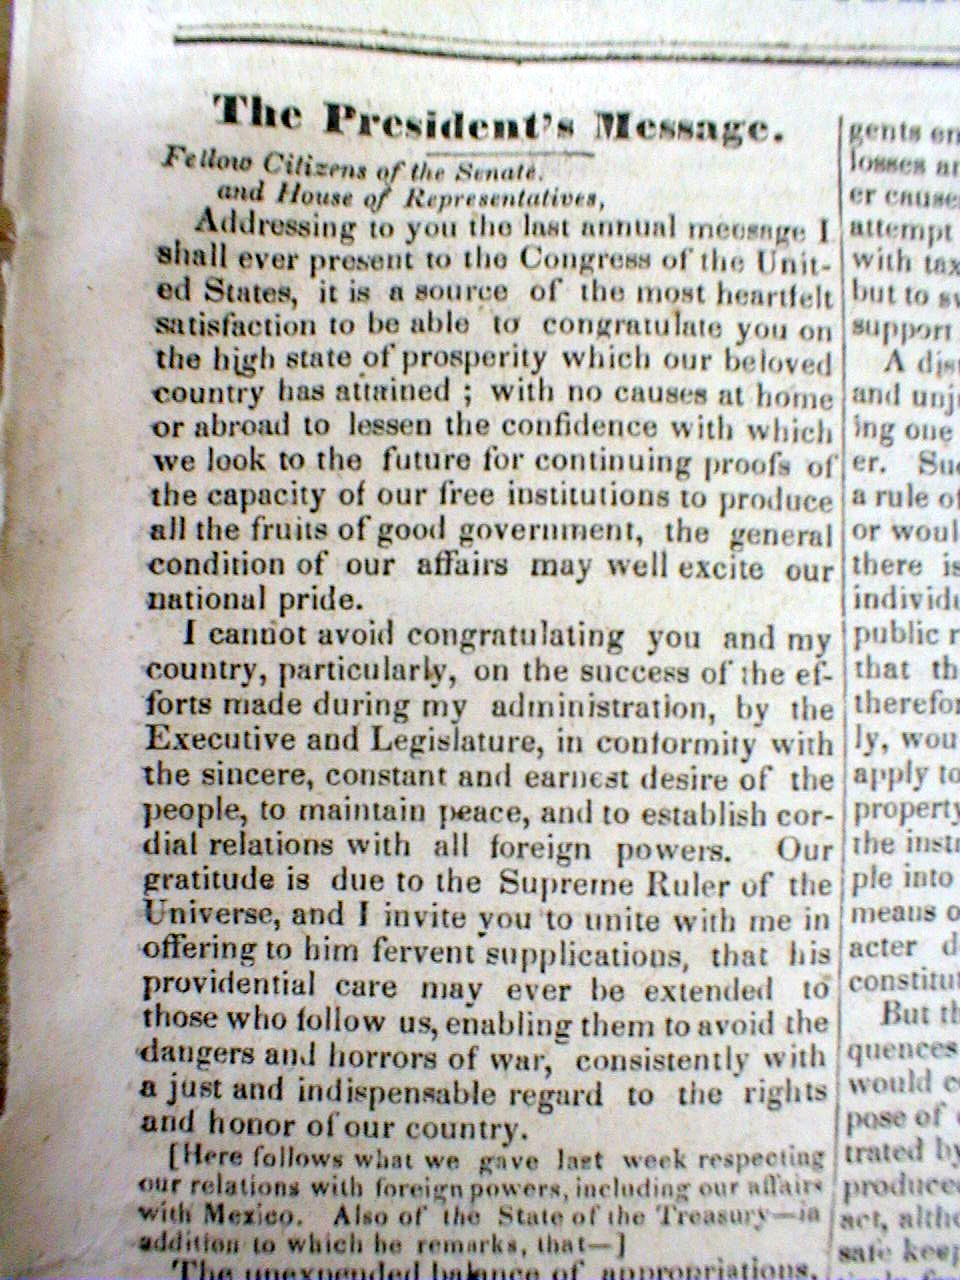 indian removal policy The indian removal act of 1830 [this was the jackson-era legislation authorizing the president to transfer eastern indian tribes to the western territories promised (falsely) in perpetuity the actual relocation culminated in the 1838 trail of tears forced march, one of the most shameful occurrences in the history of federal domestic policy.